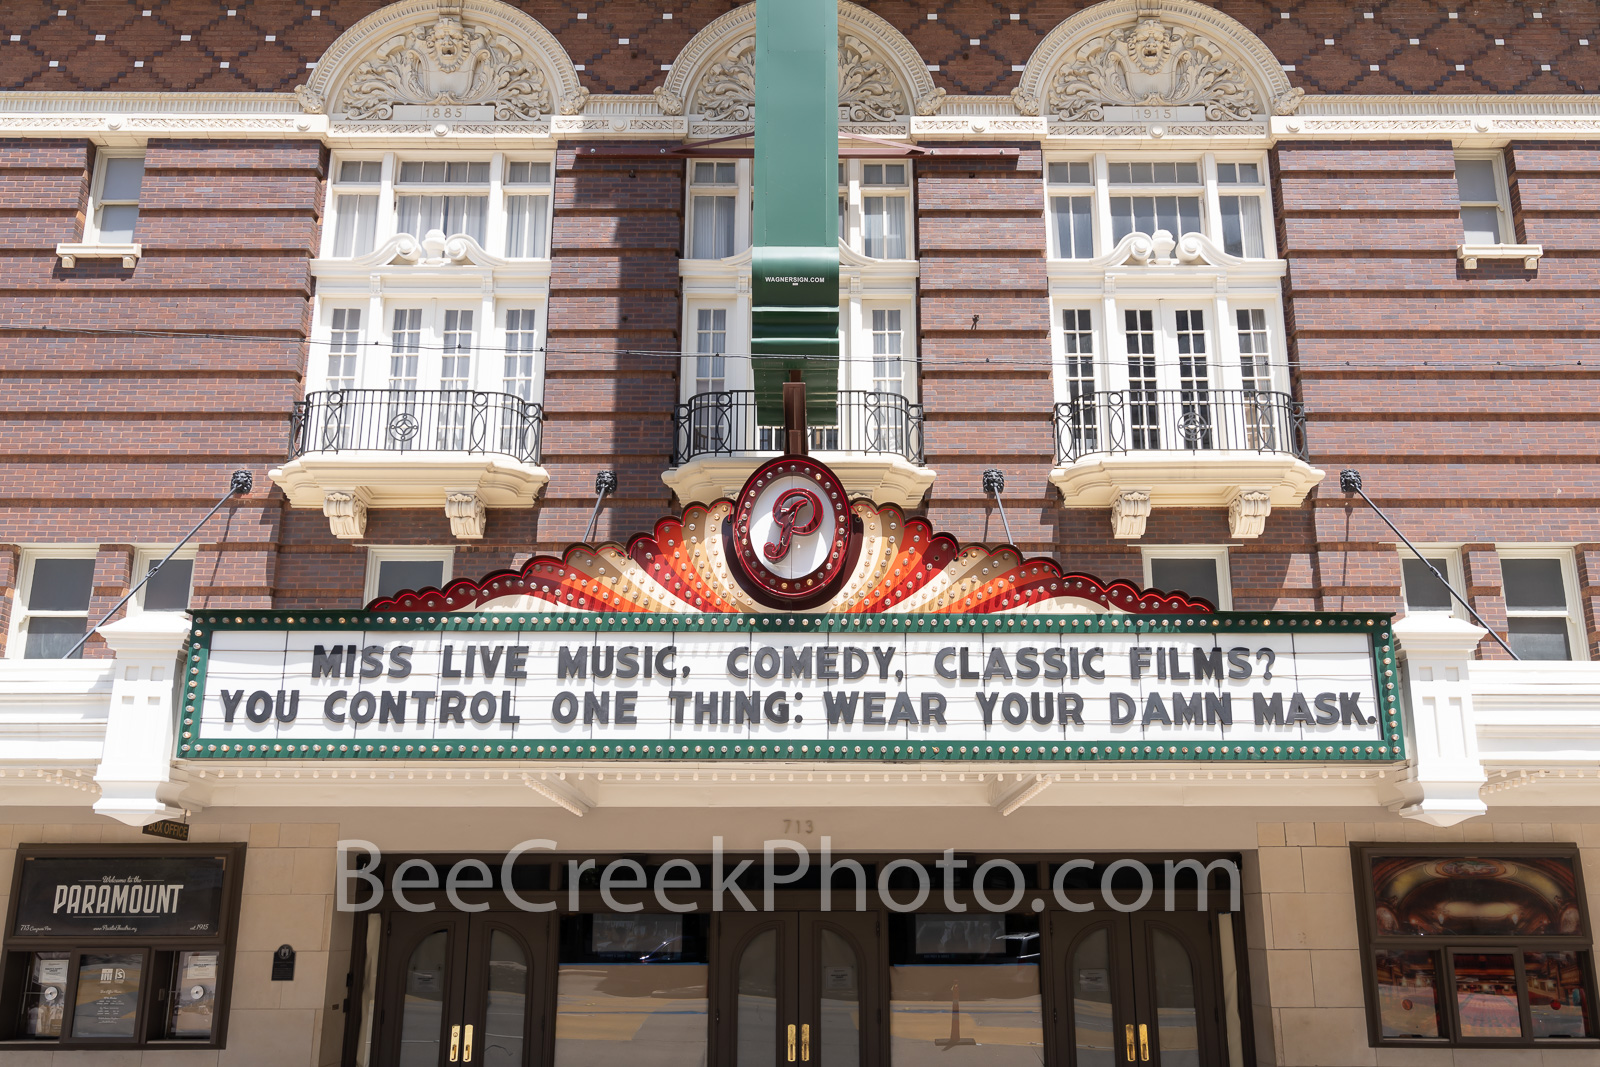 Paramount Theatre Marquee - The Paramount Theatre is a live theatre venue/movie theatre located in downtown Austin, Texas. The...